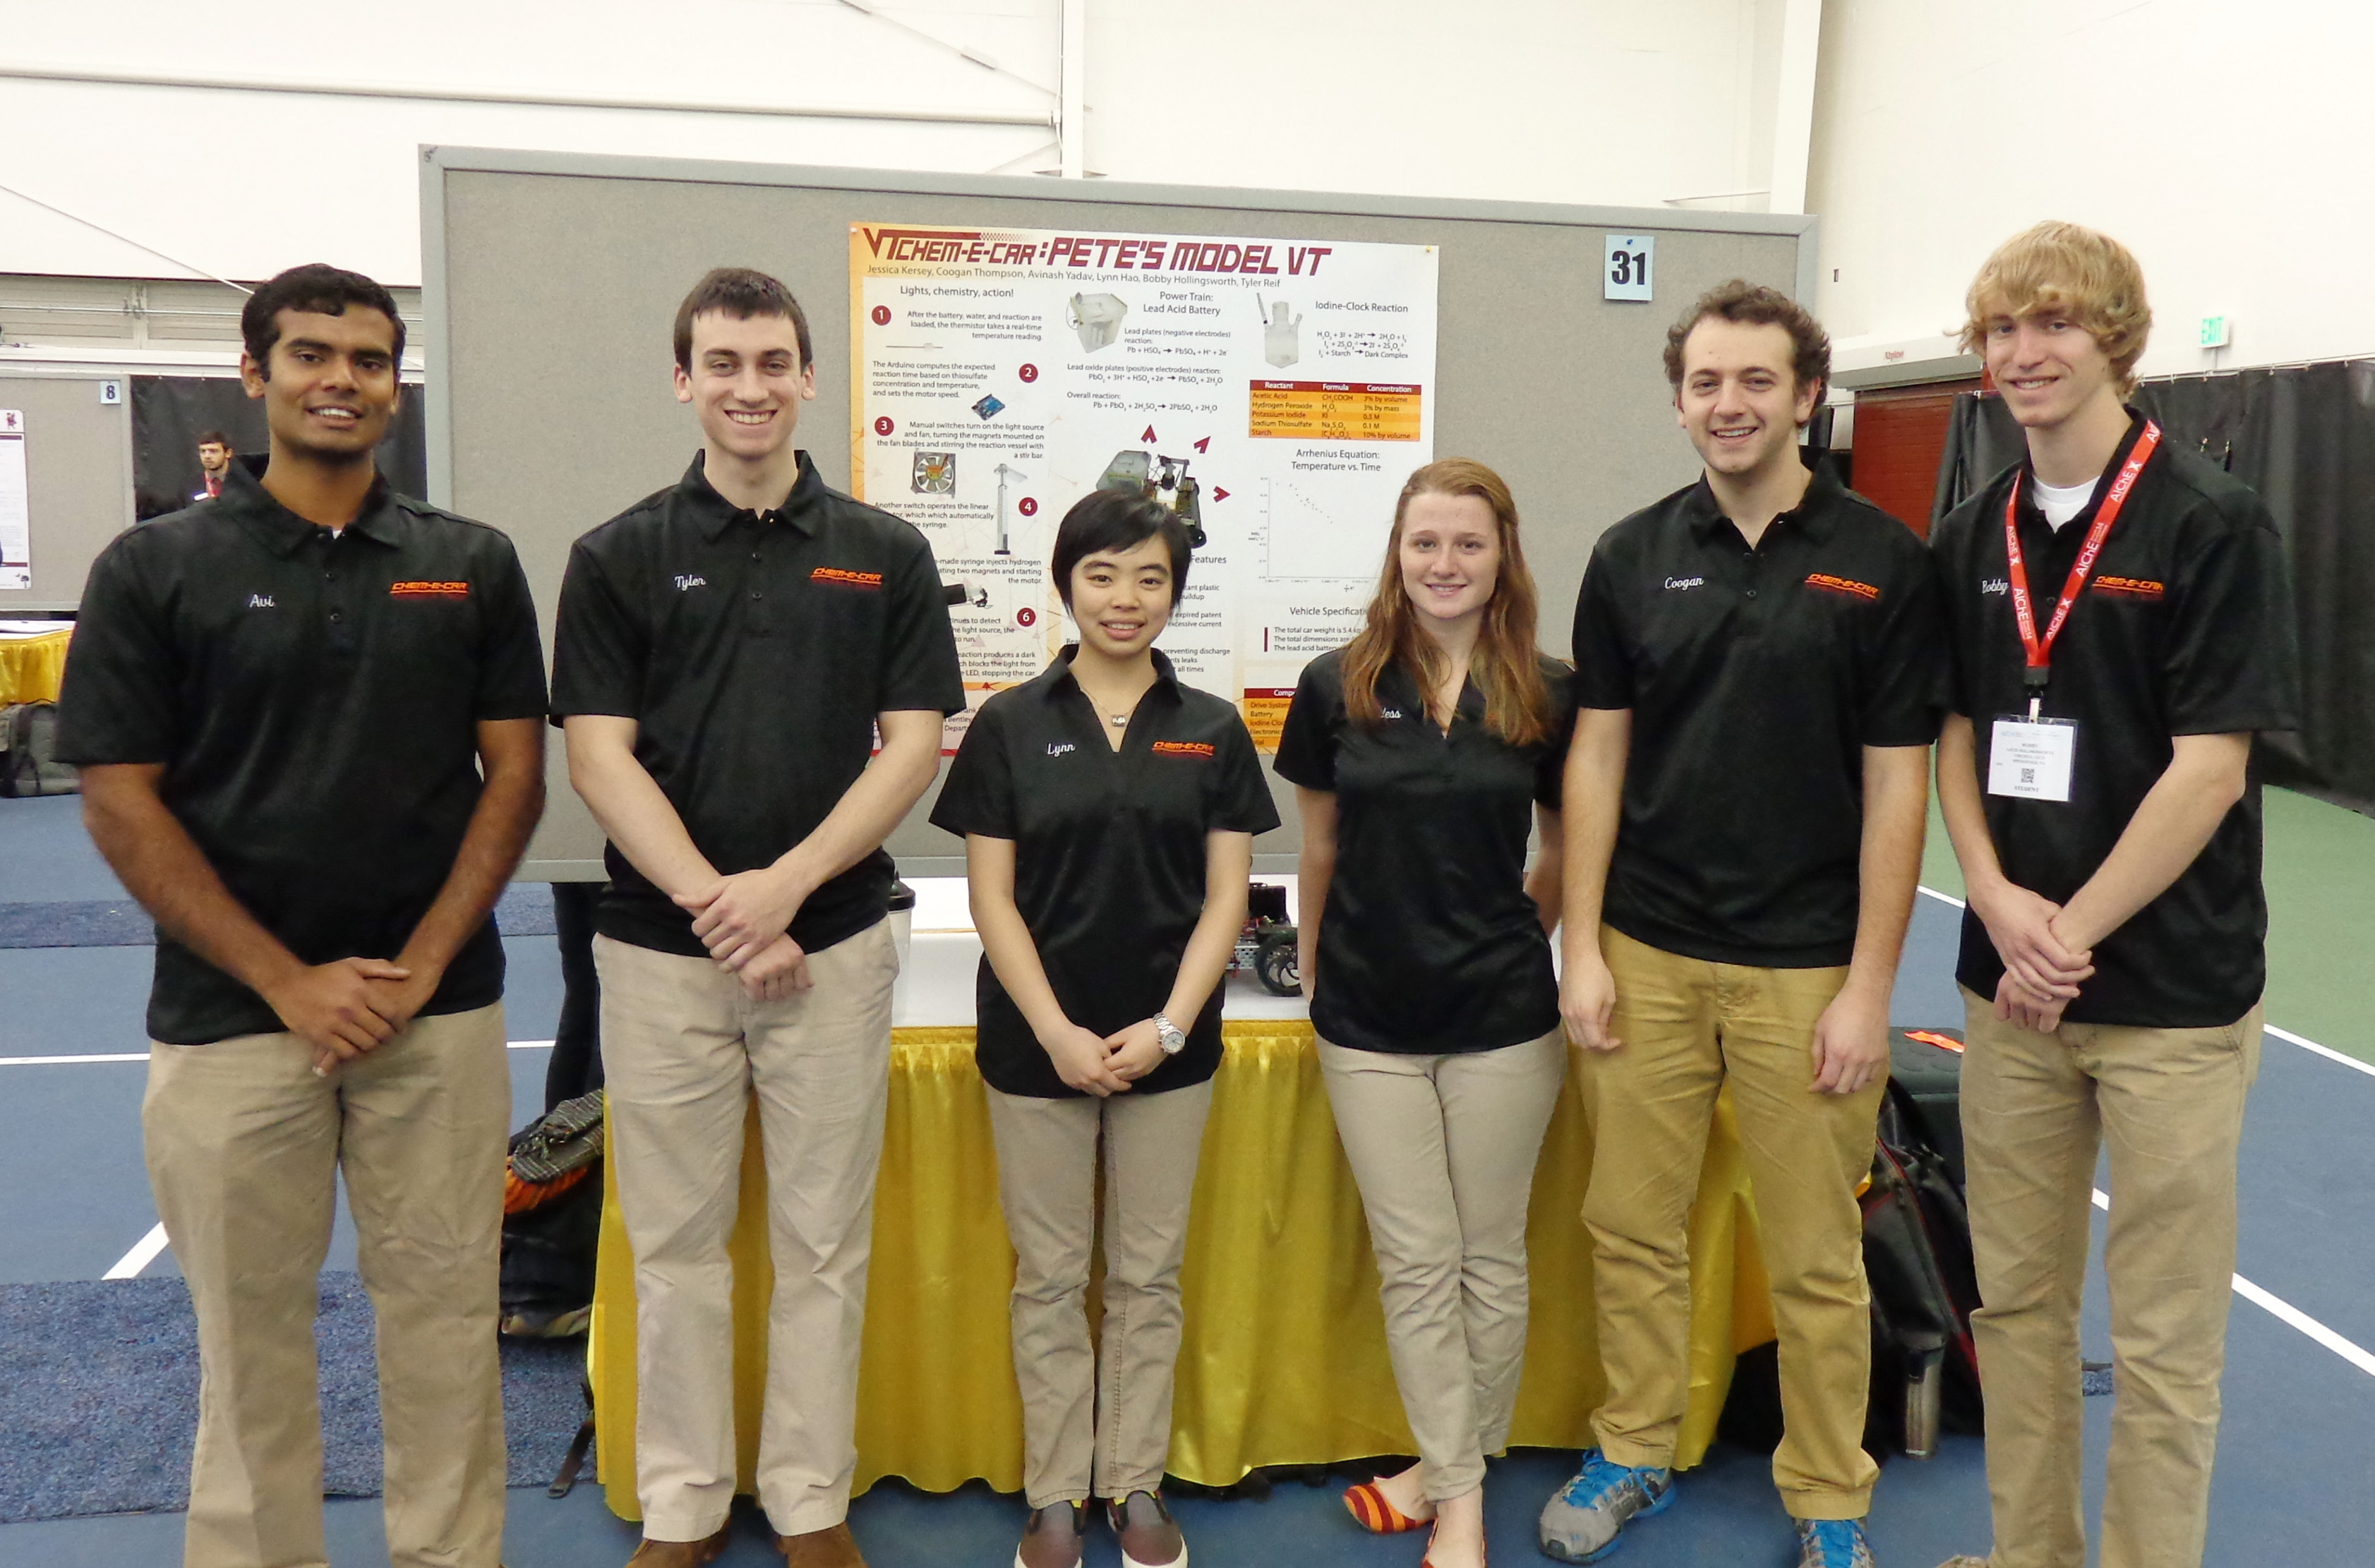 From left to right are the members of the Virginia Tech Chem-E Car Team: Avinash Yadav, Tyler Reif, Yining Hao, Jessica Kersey, Coogan Thompson, and Bobby Hollingsworth.